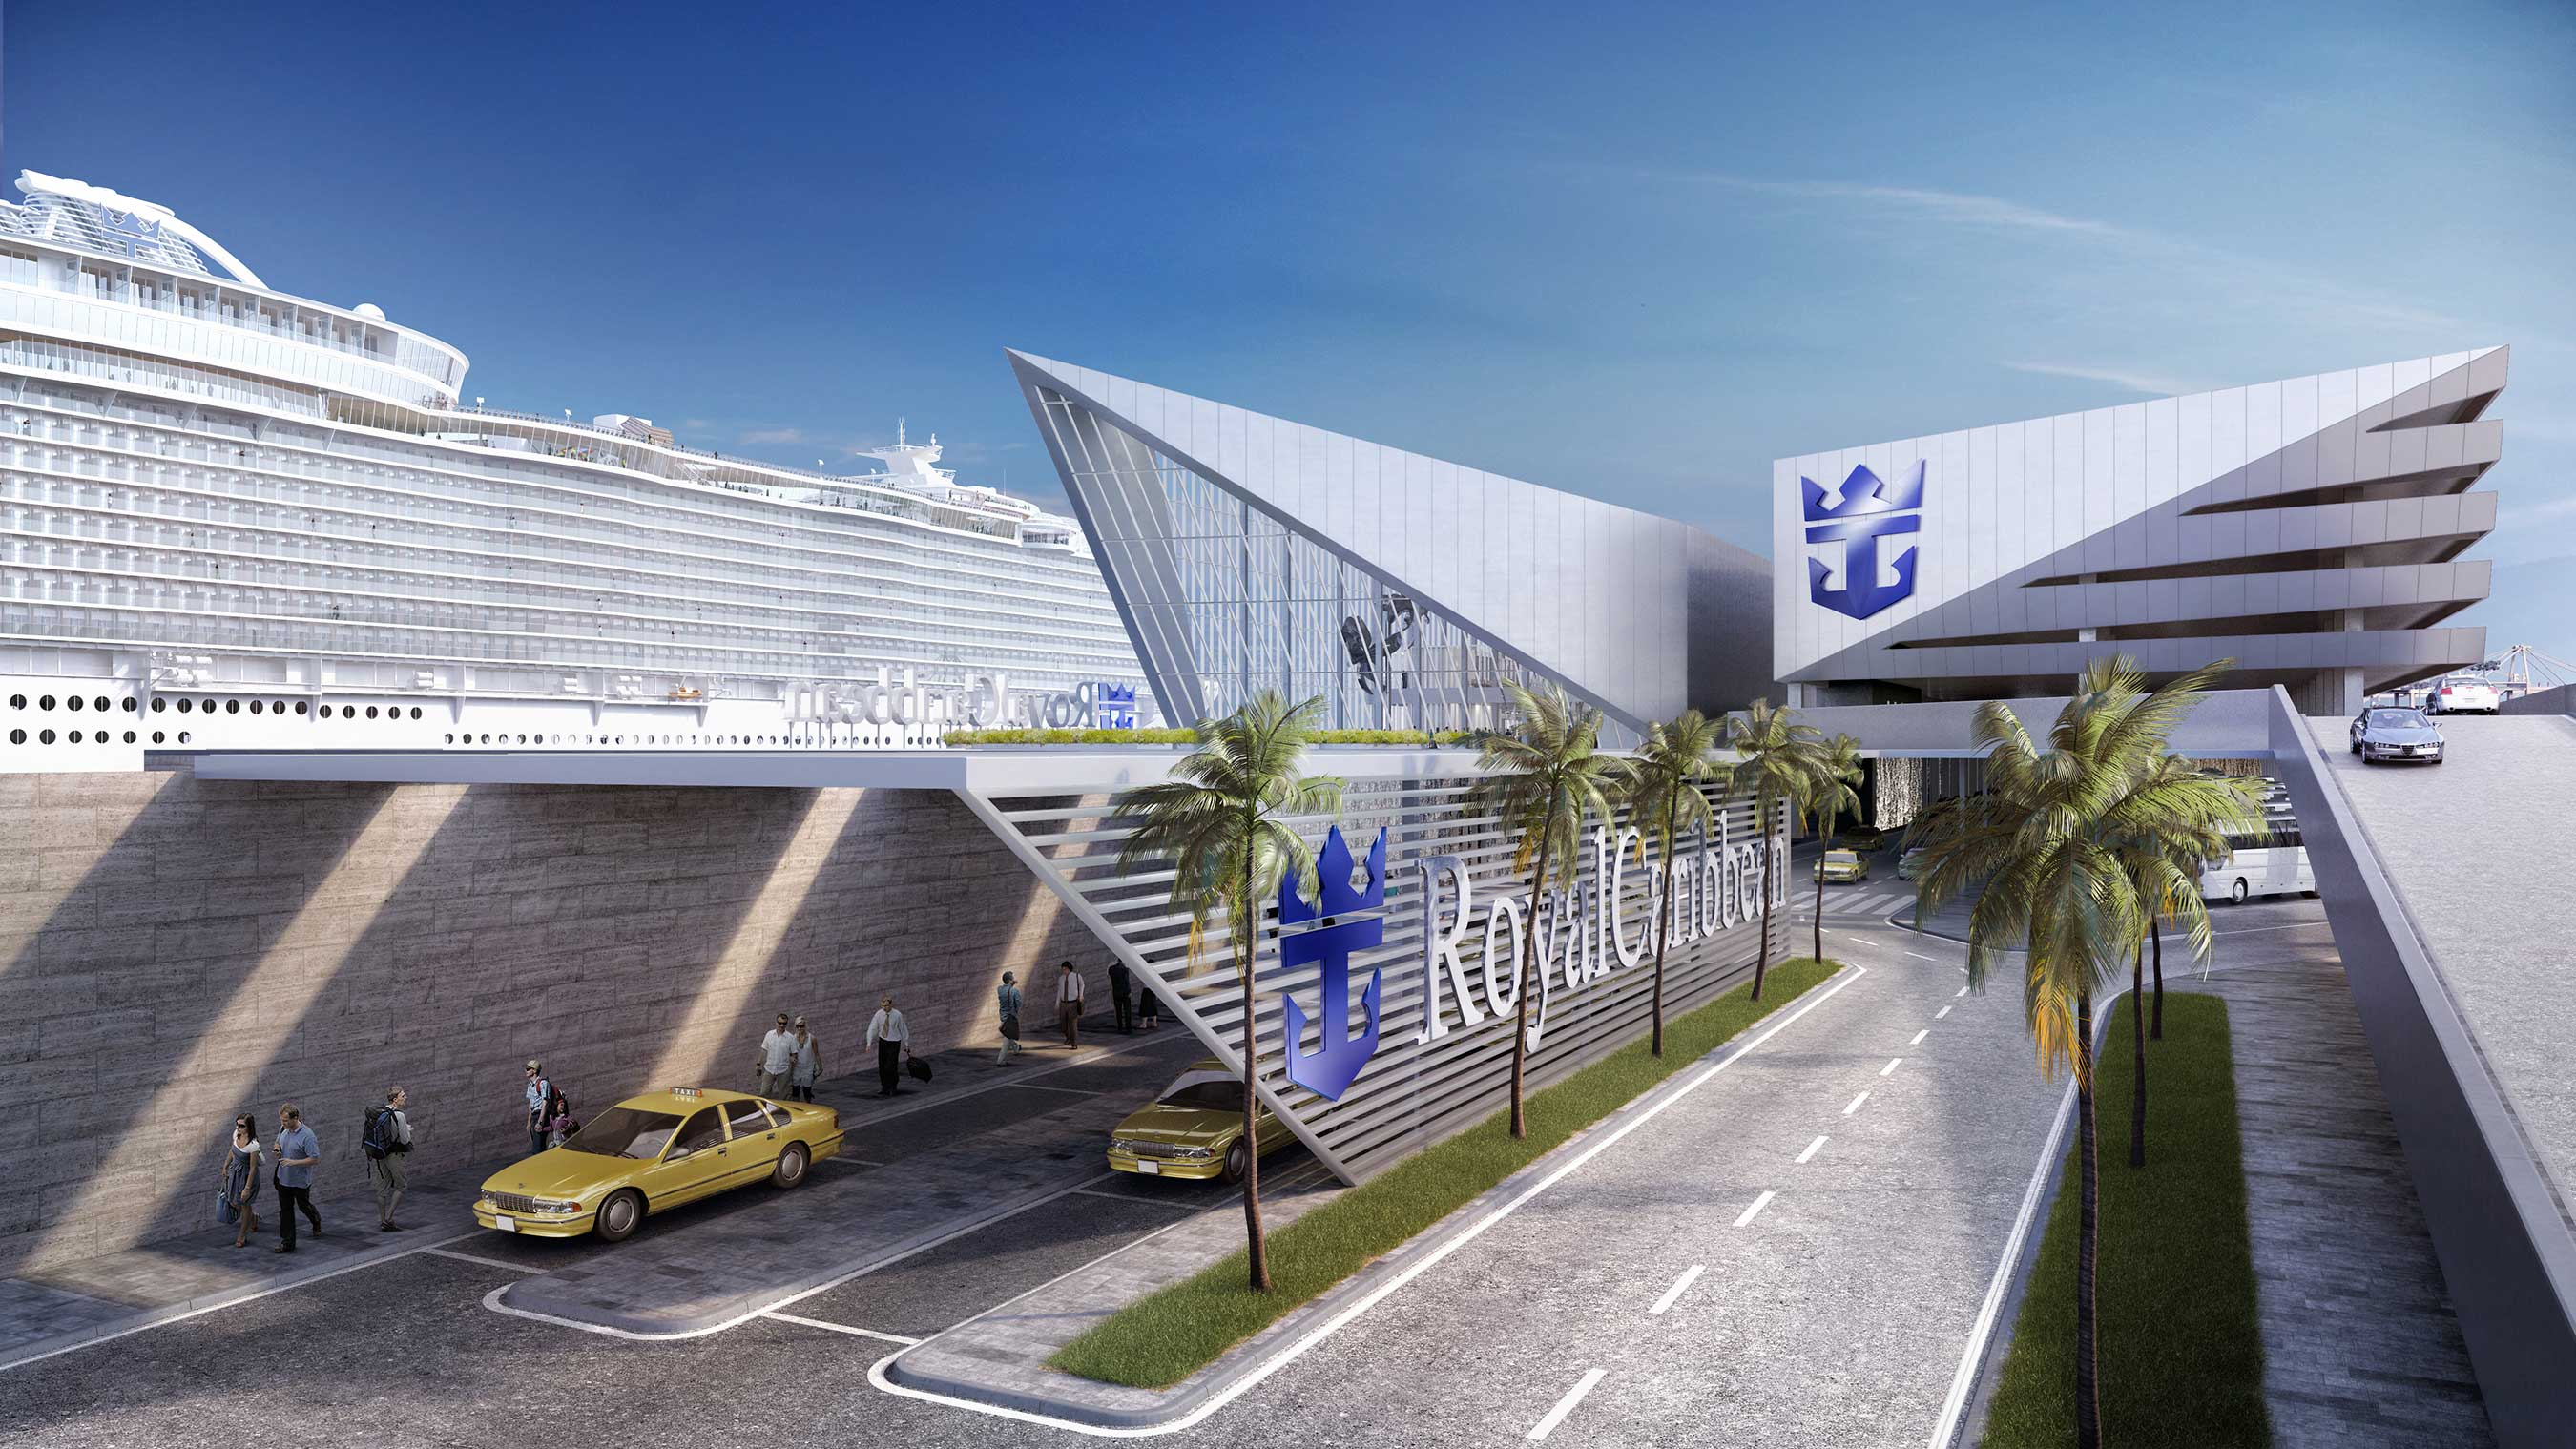 Royal Caribbean's new terminal will homeport an 5,400-passenger Oasis-class ship. The iconic building is slated for late 2018.